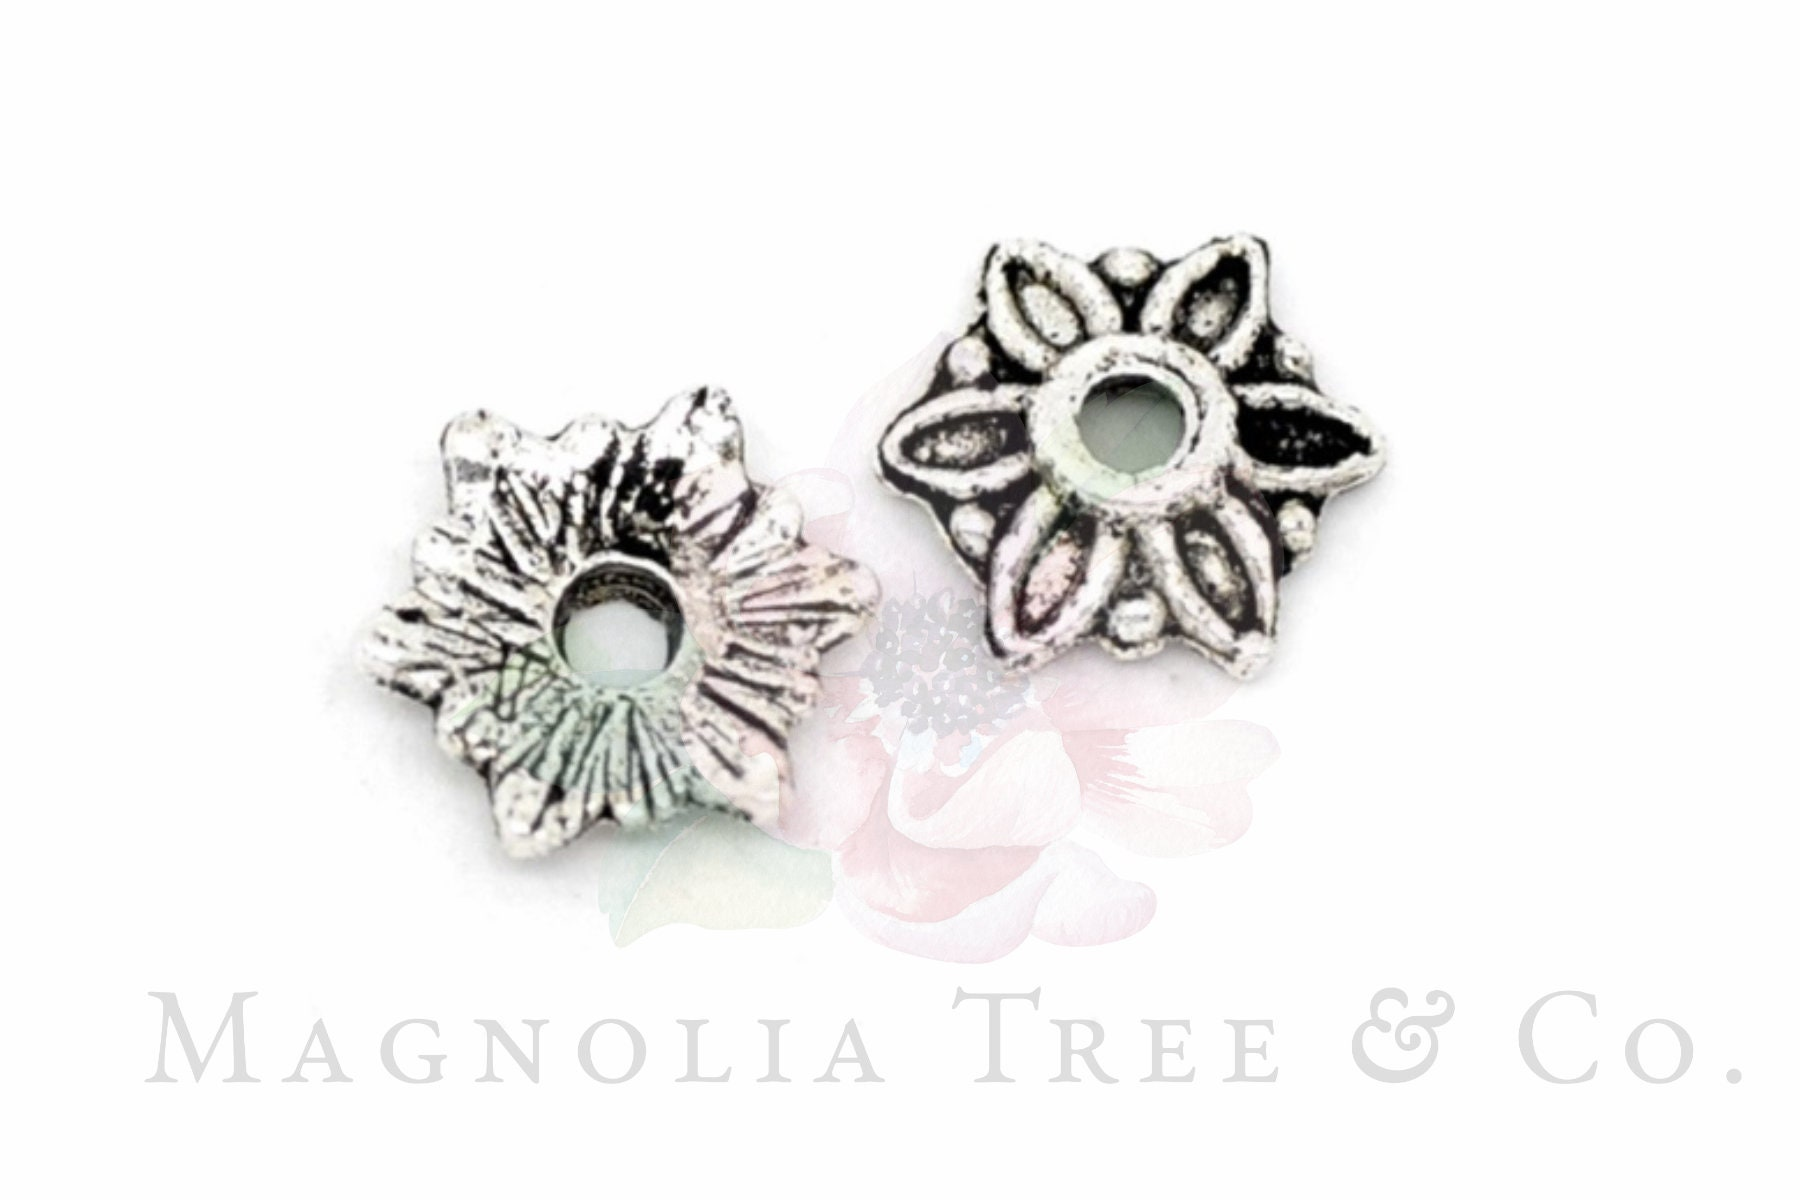 Pcs Findings Crafts Metal Alloy Flower Bead Caps Antique Silver 2 x 8mm  100